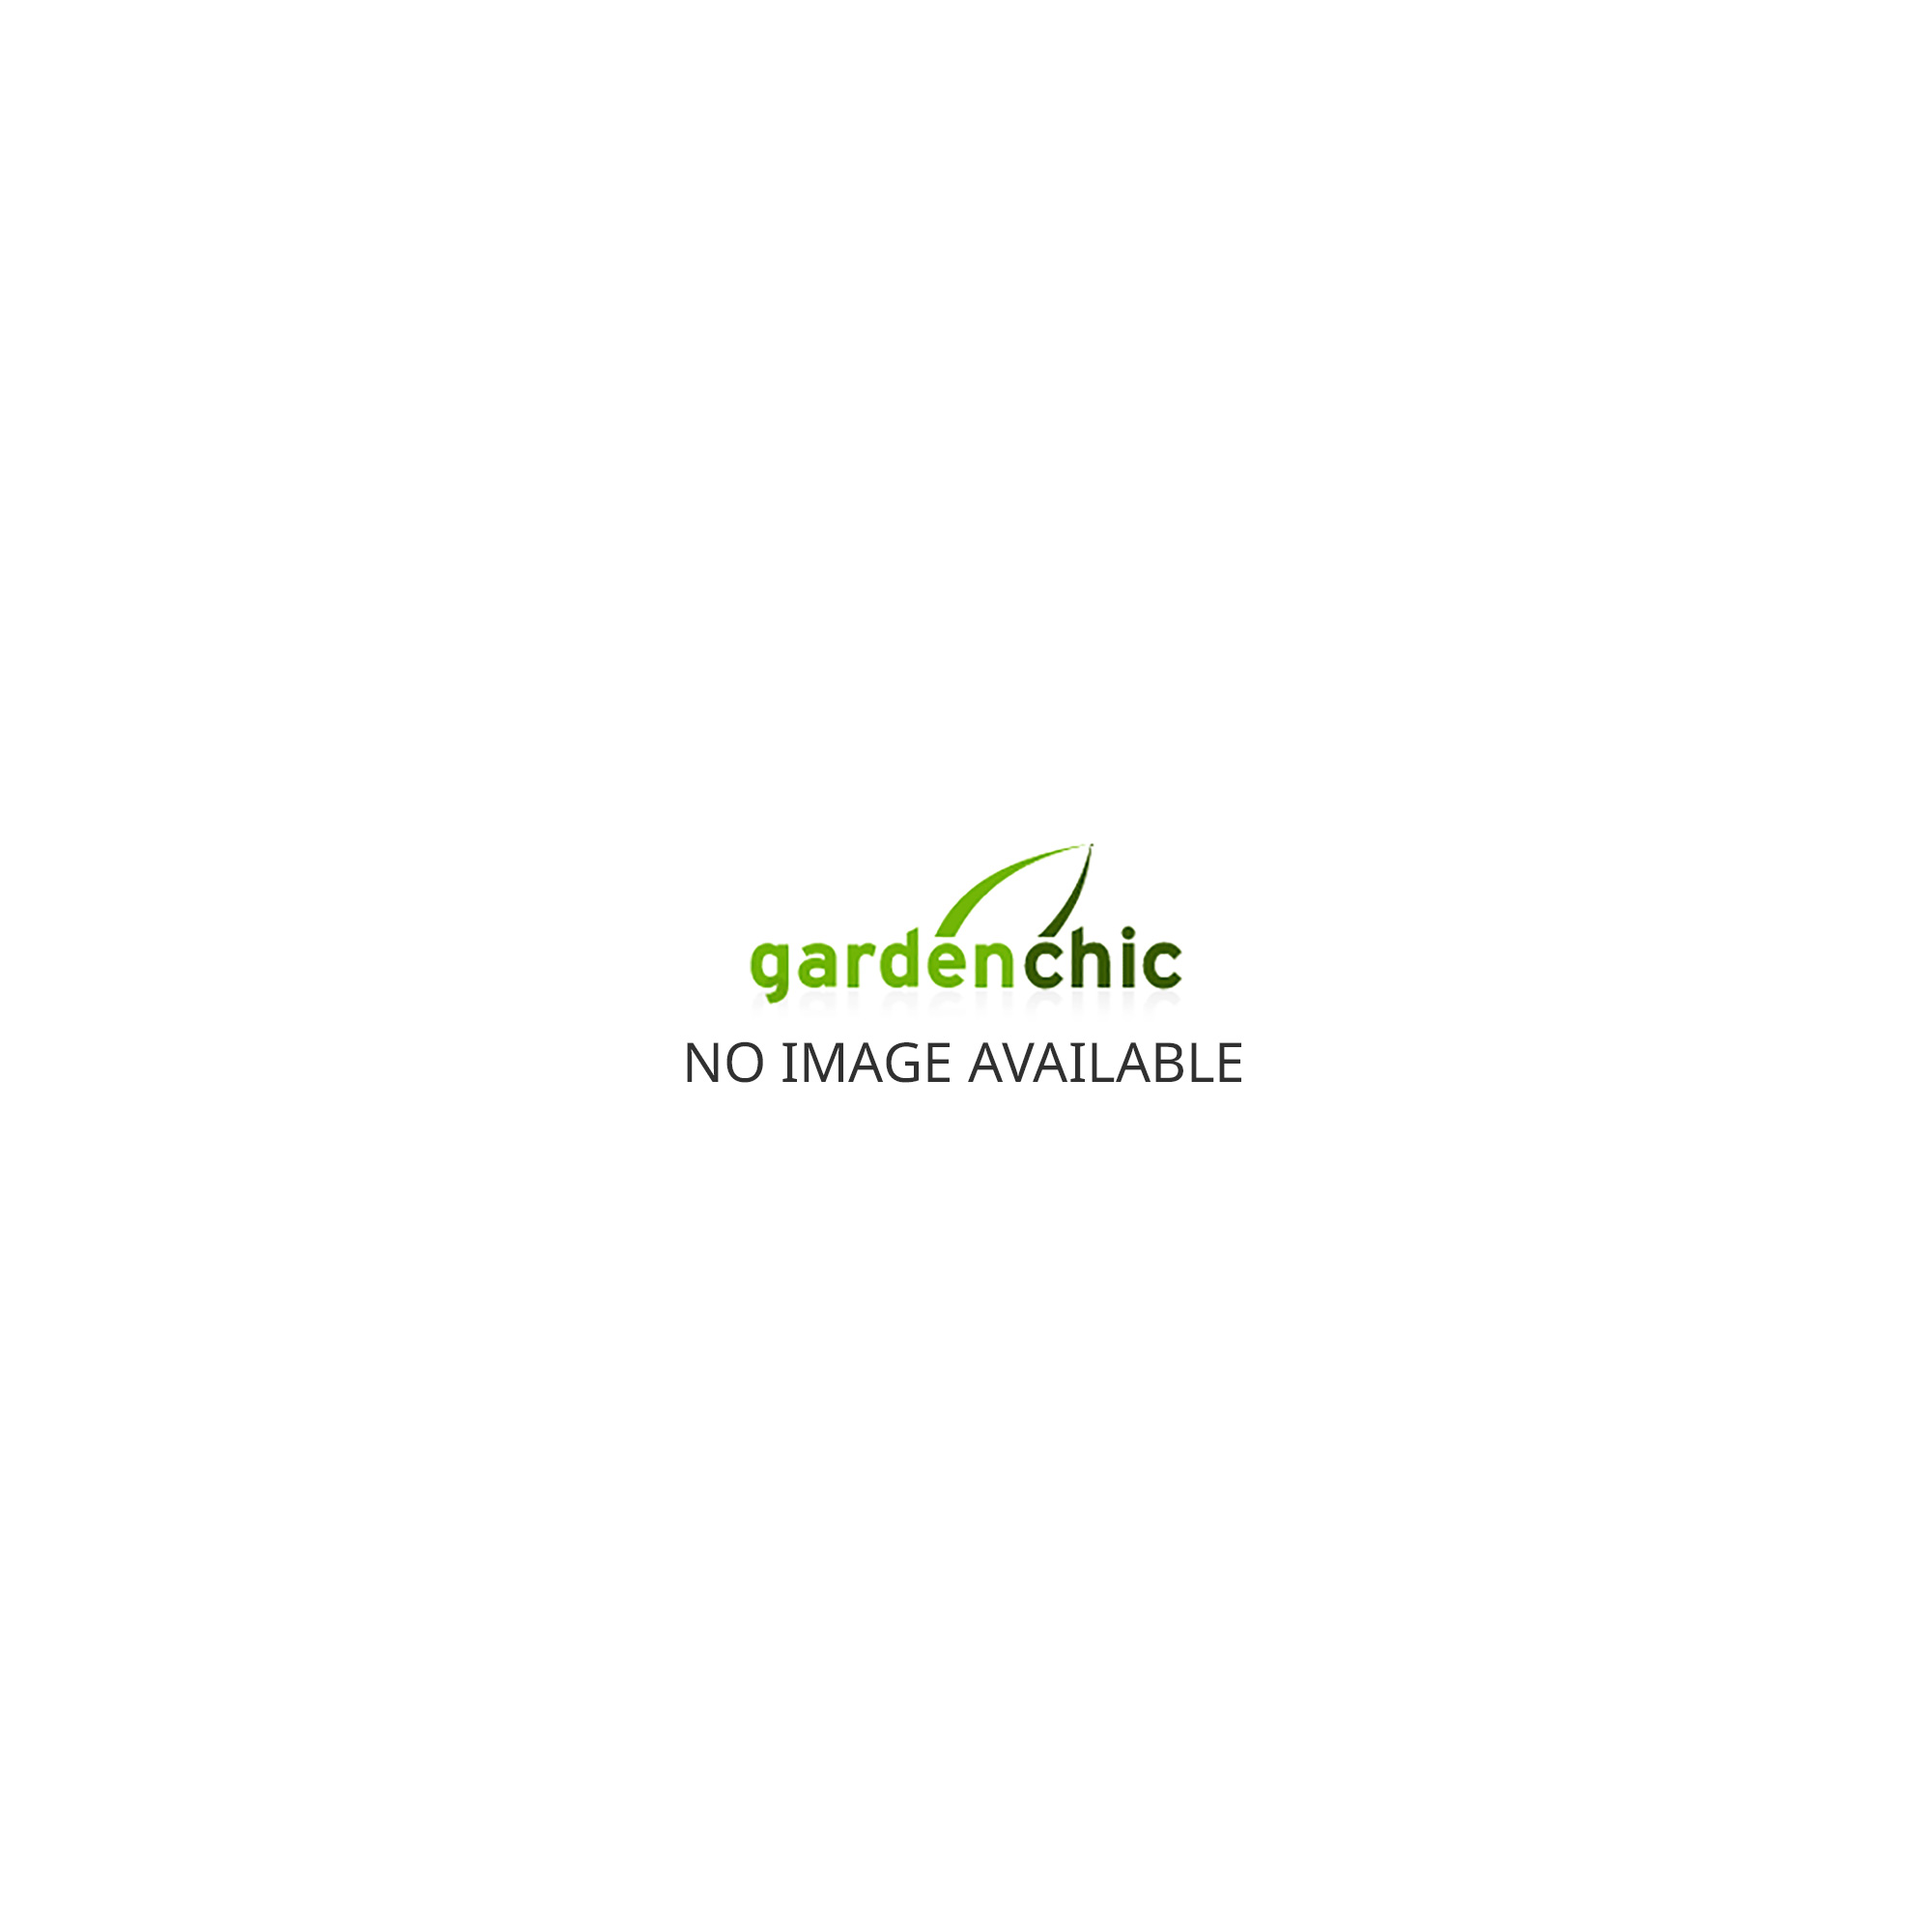 Winchester Gazebo with Wooden or Tiled Roof